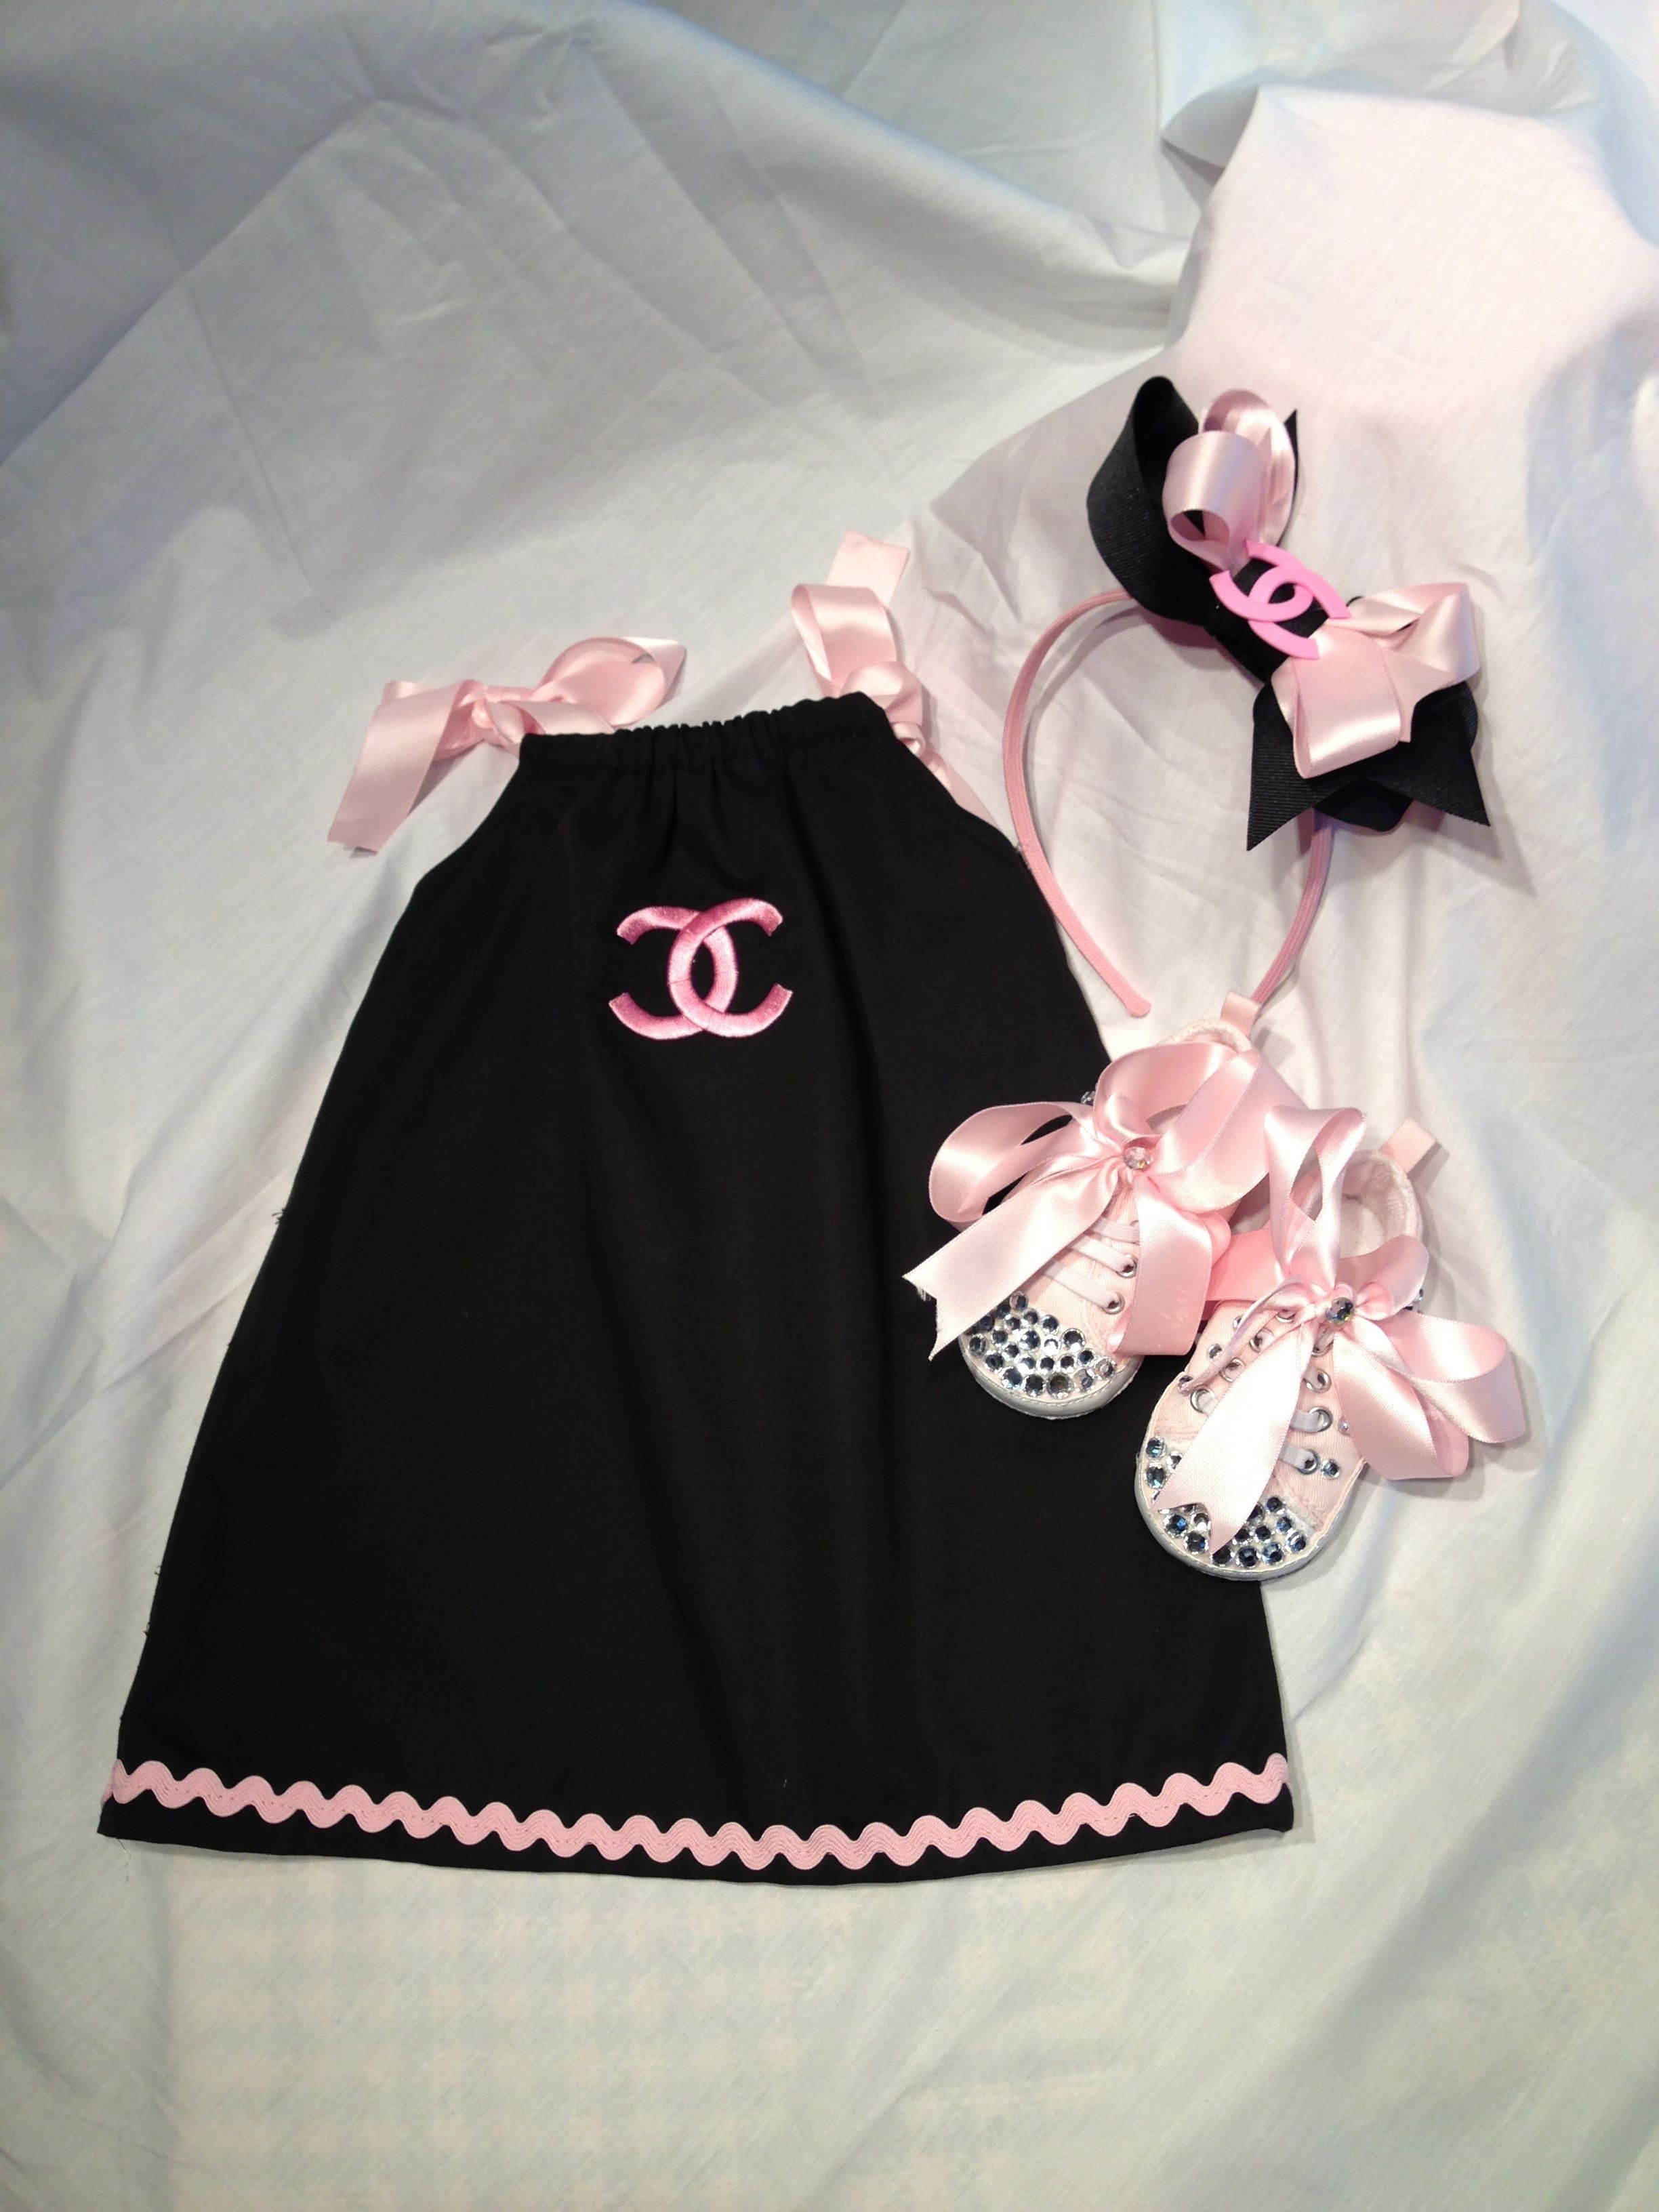 f17073e00061 Chanel inspired baby girl gift set Exclusively made by IrinaDesign to order  selimol@aol.com 561-866-6271